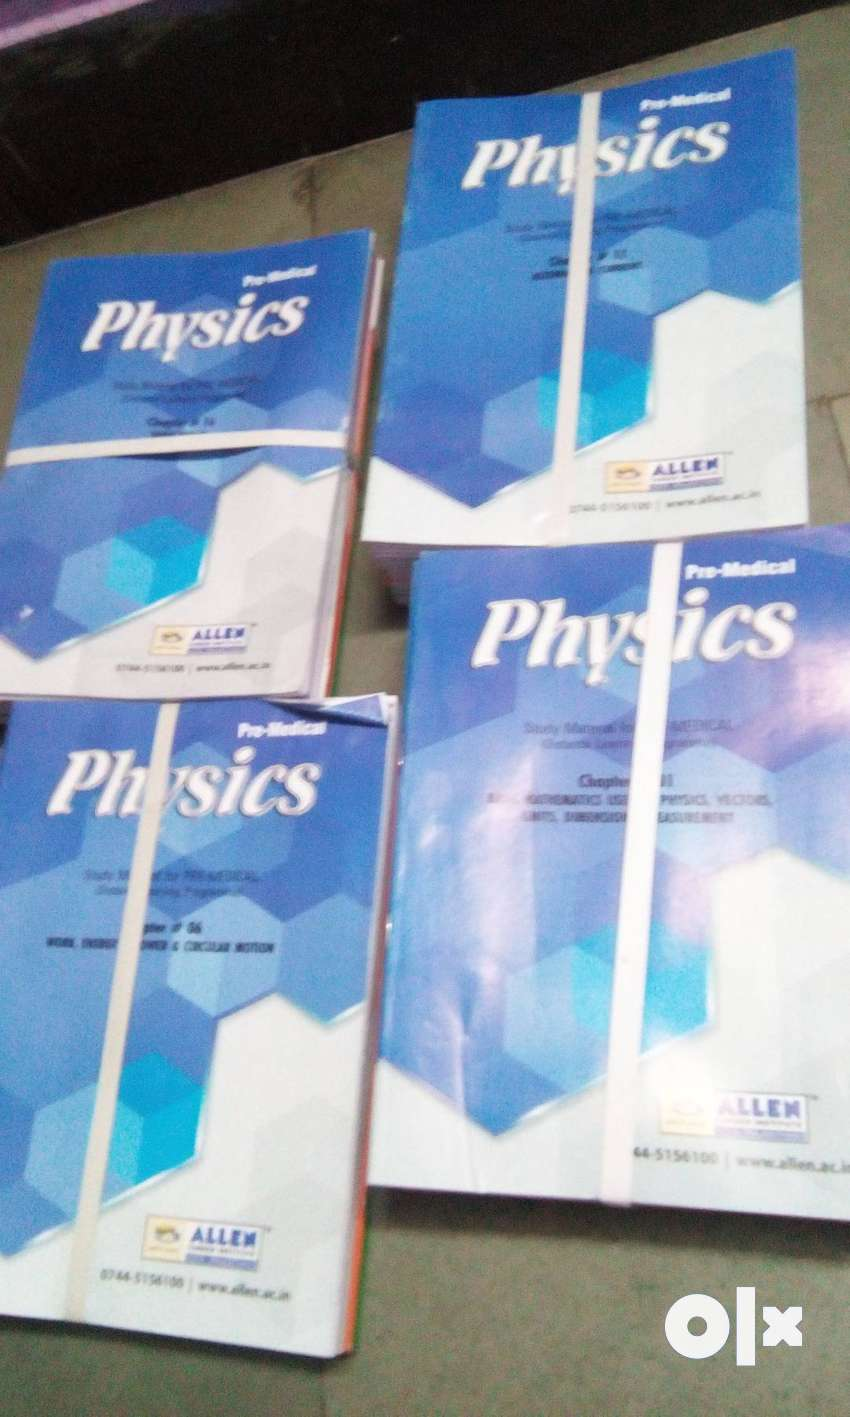 Allen Dlp For Medical / Neet COMPLETE PCB With phy chem Solutions Only 0